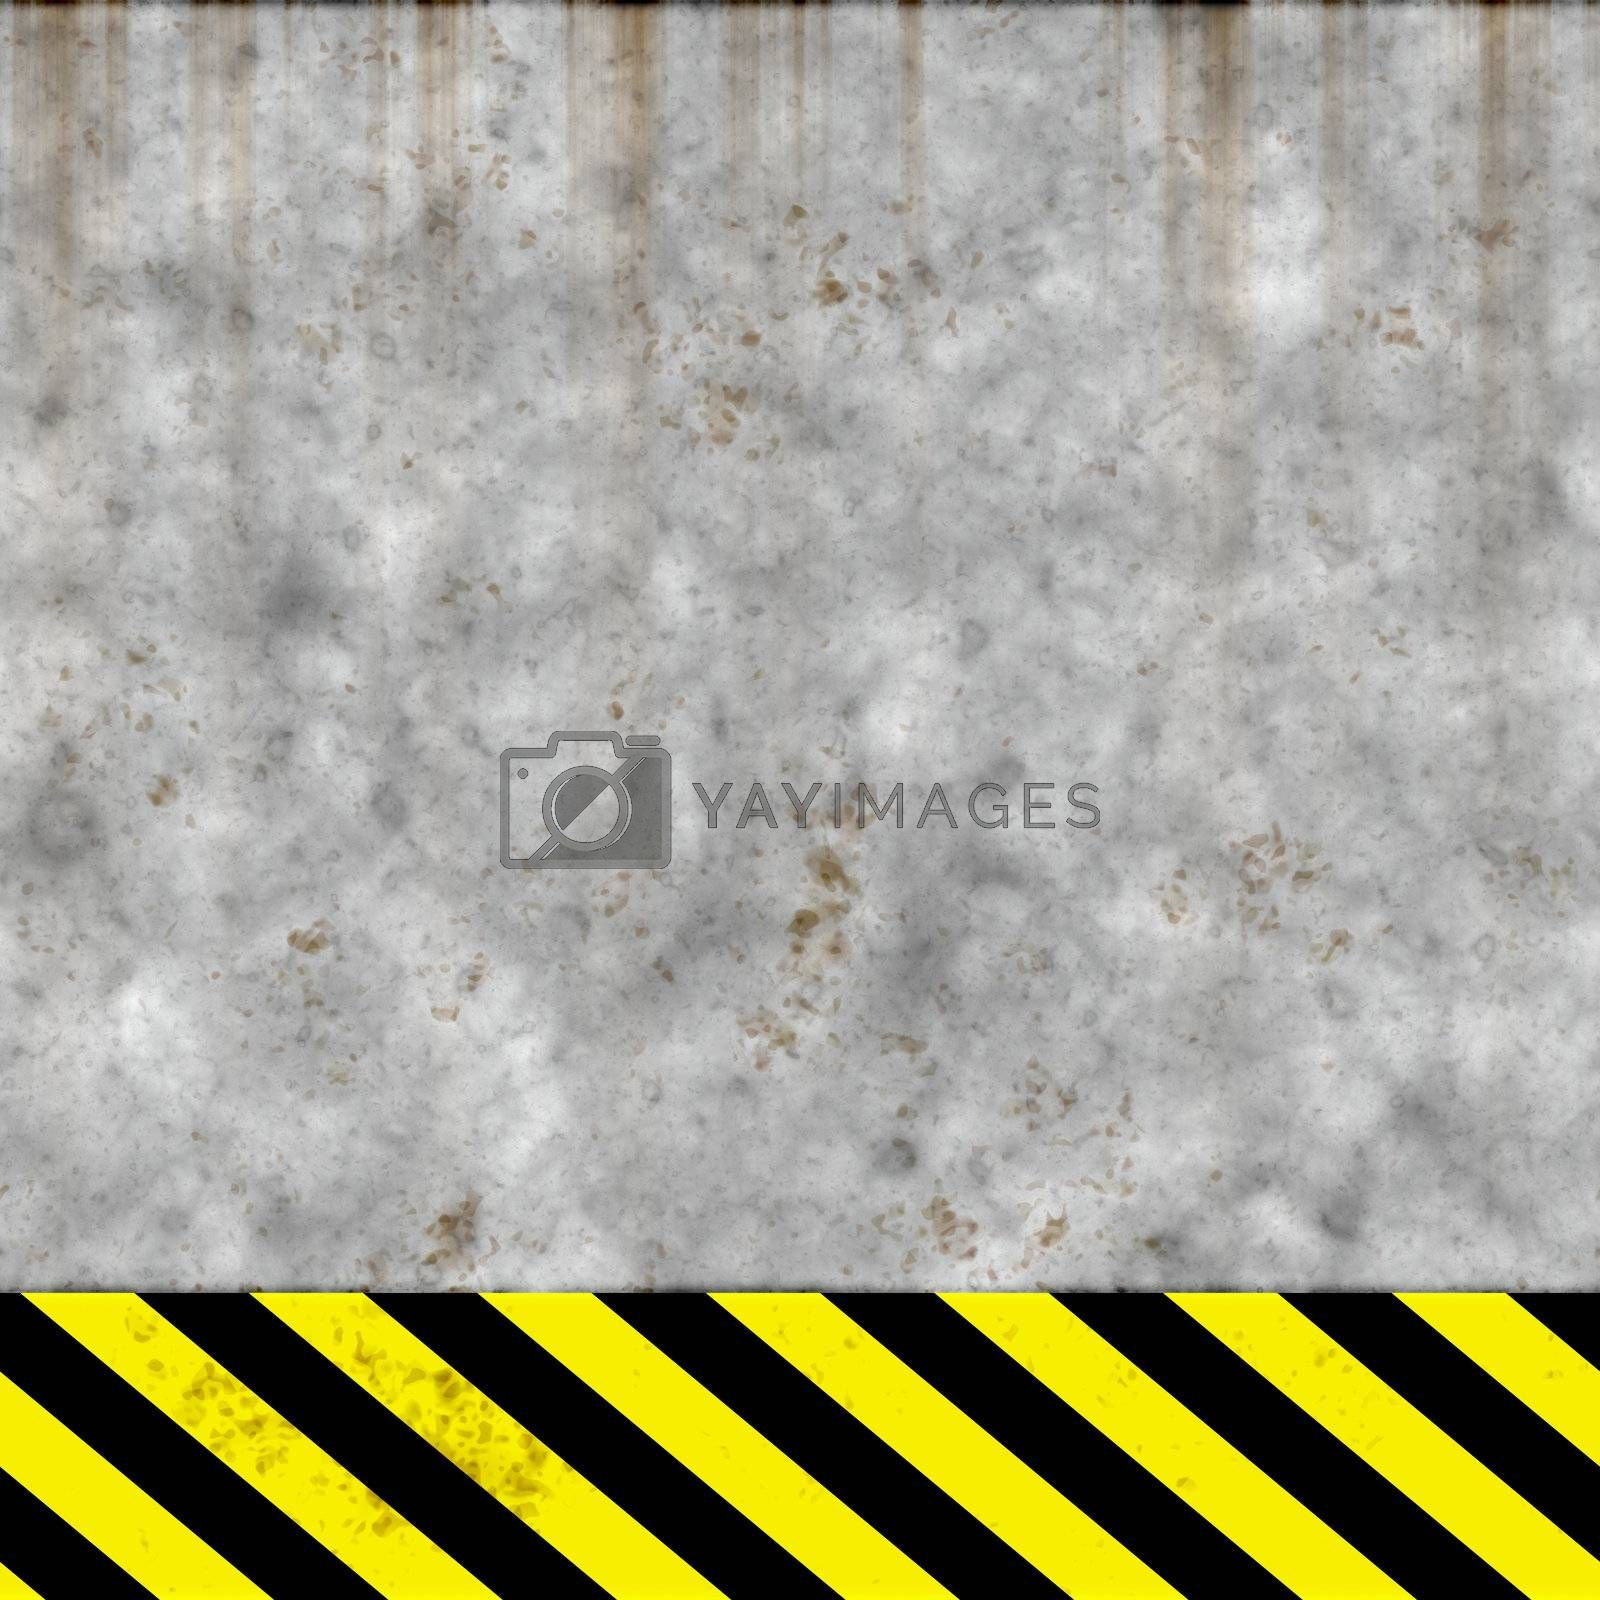 worn out cement or concrete wall with hazard stripe warning, will tile seamlessly, but only horizontally